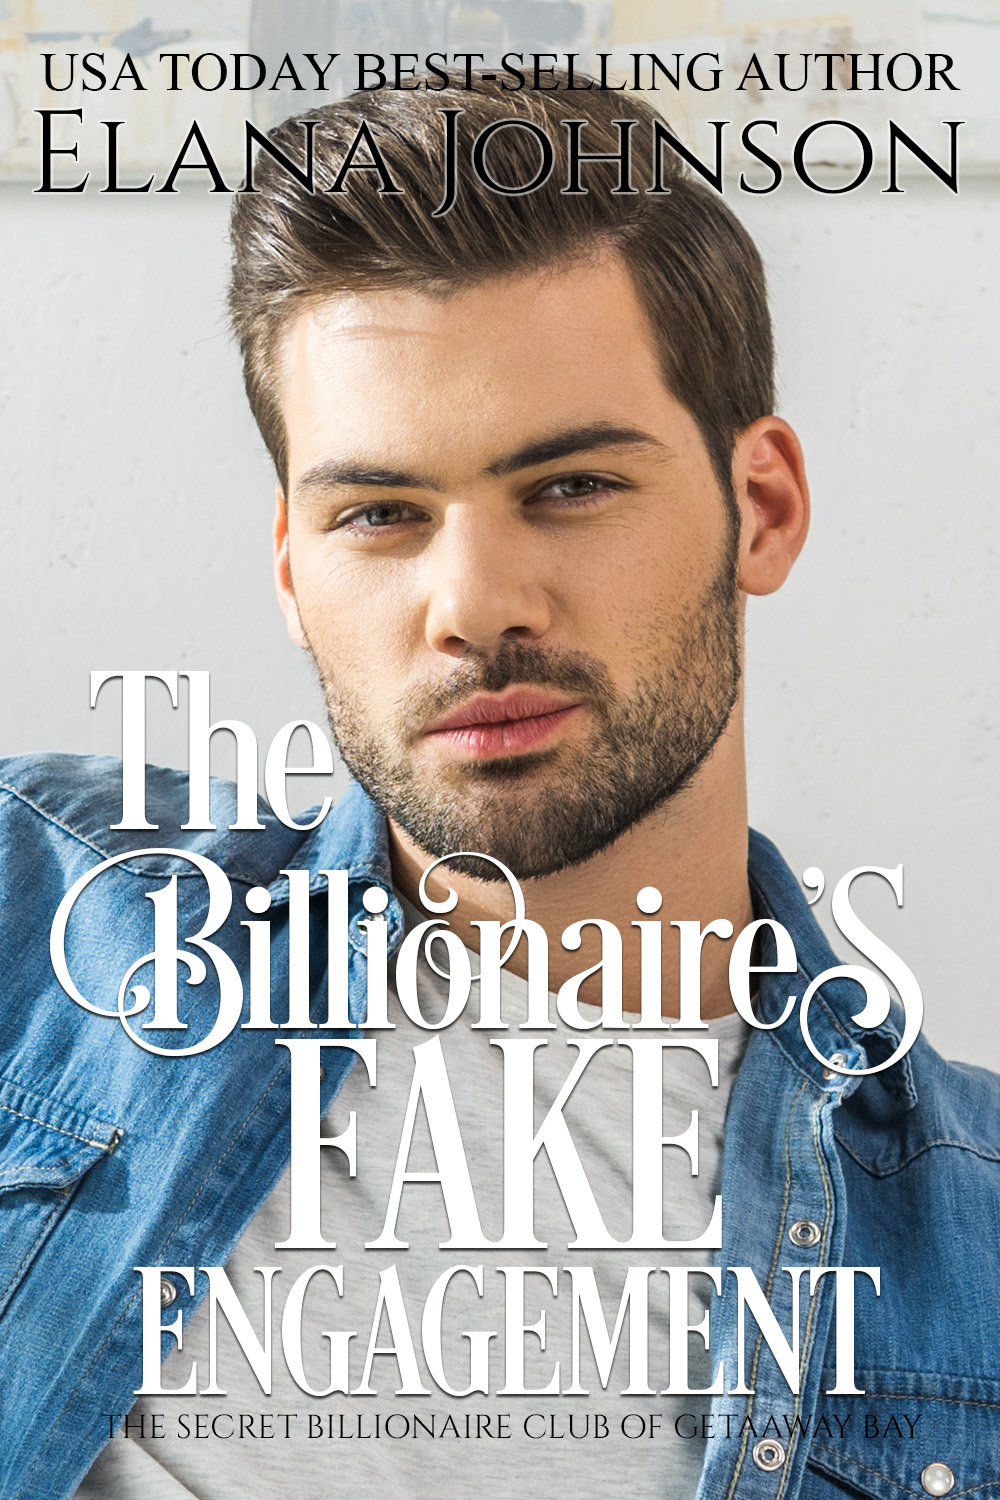 3 The Billionaire's Fake Engagement EBOOK COVER